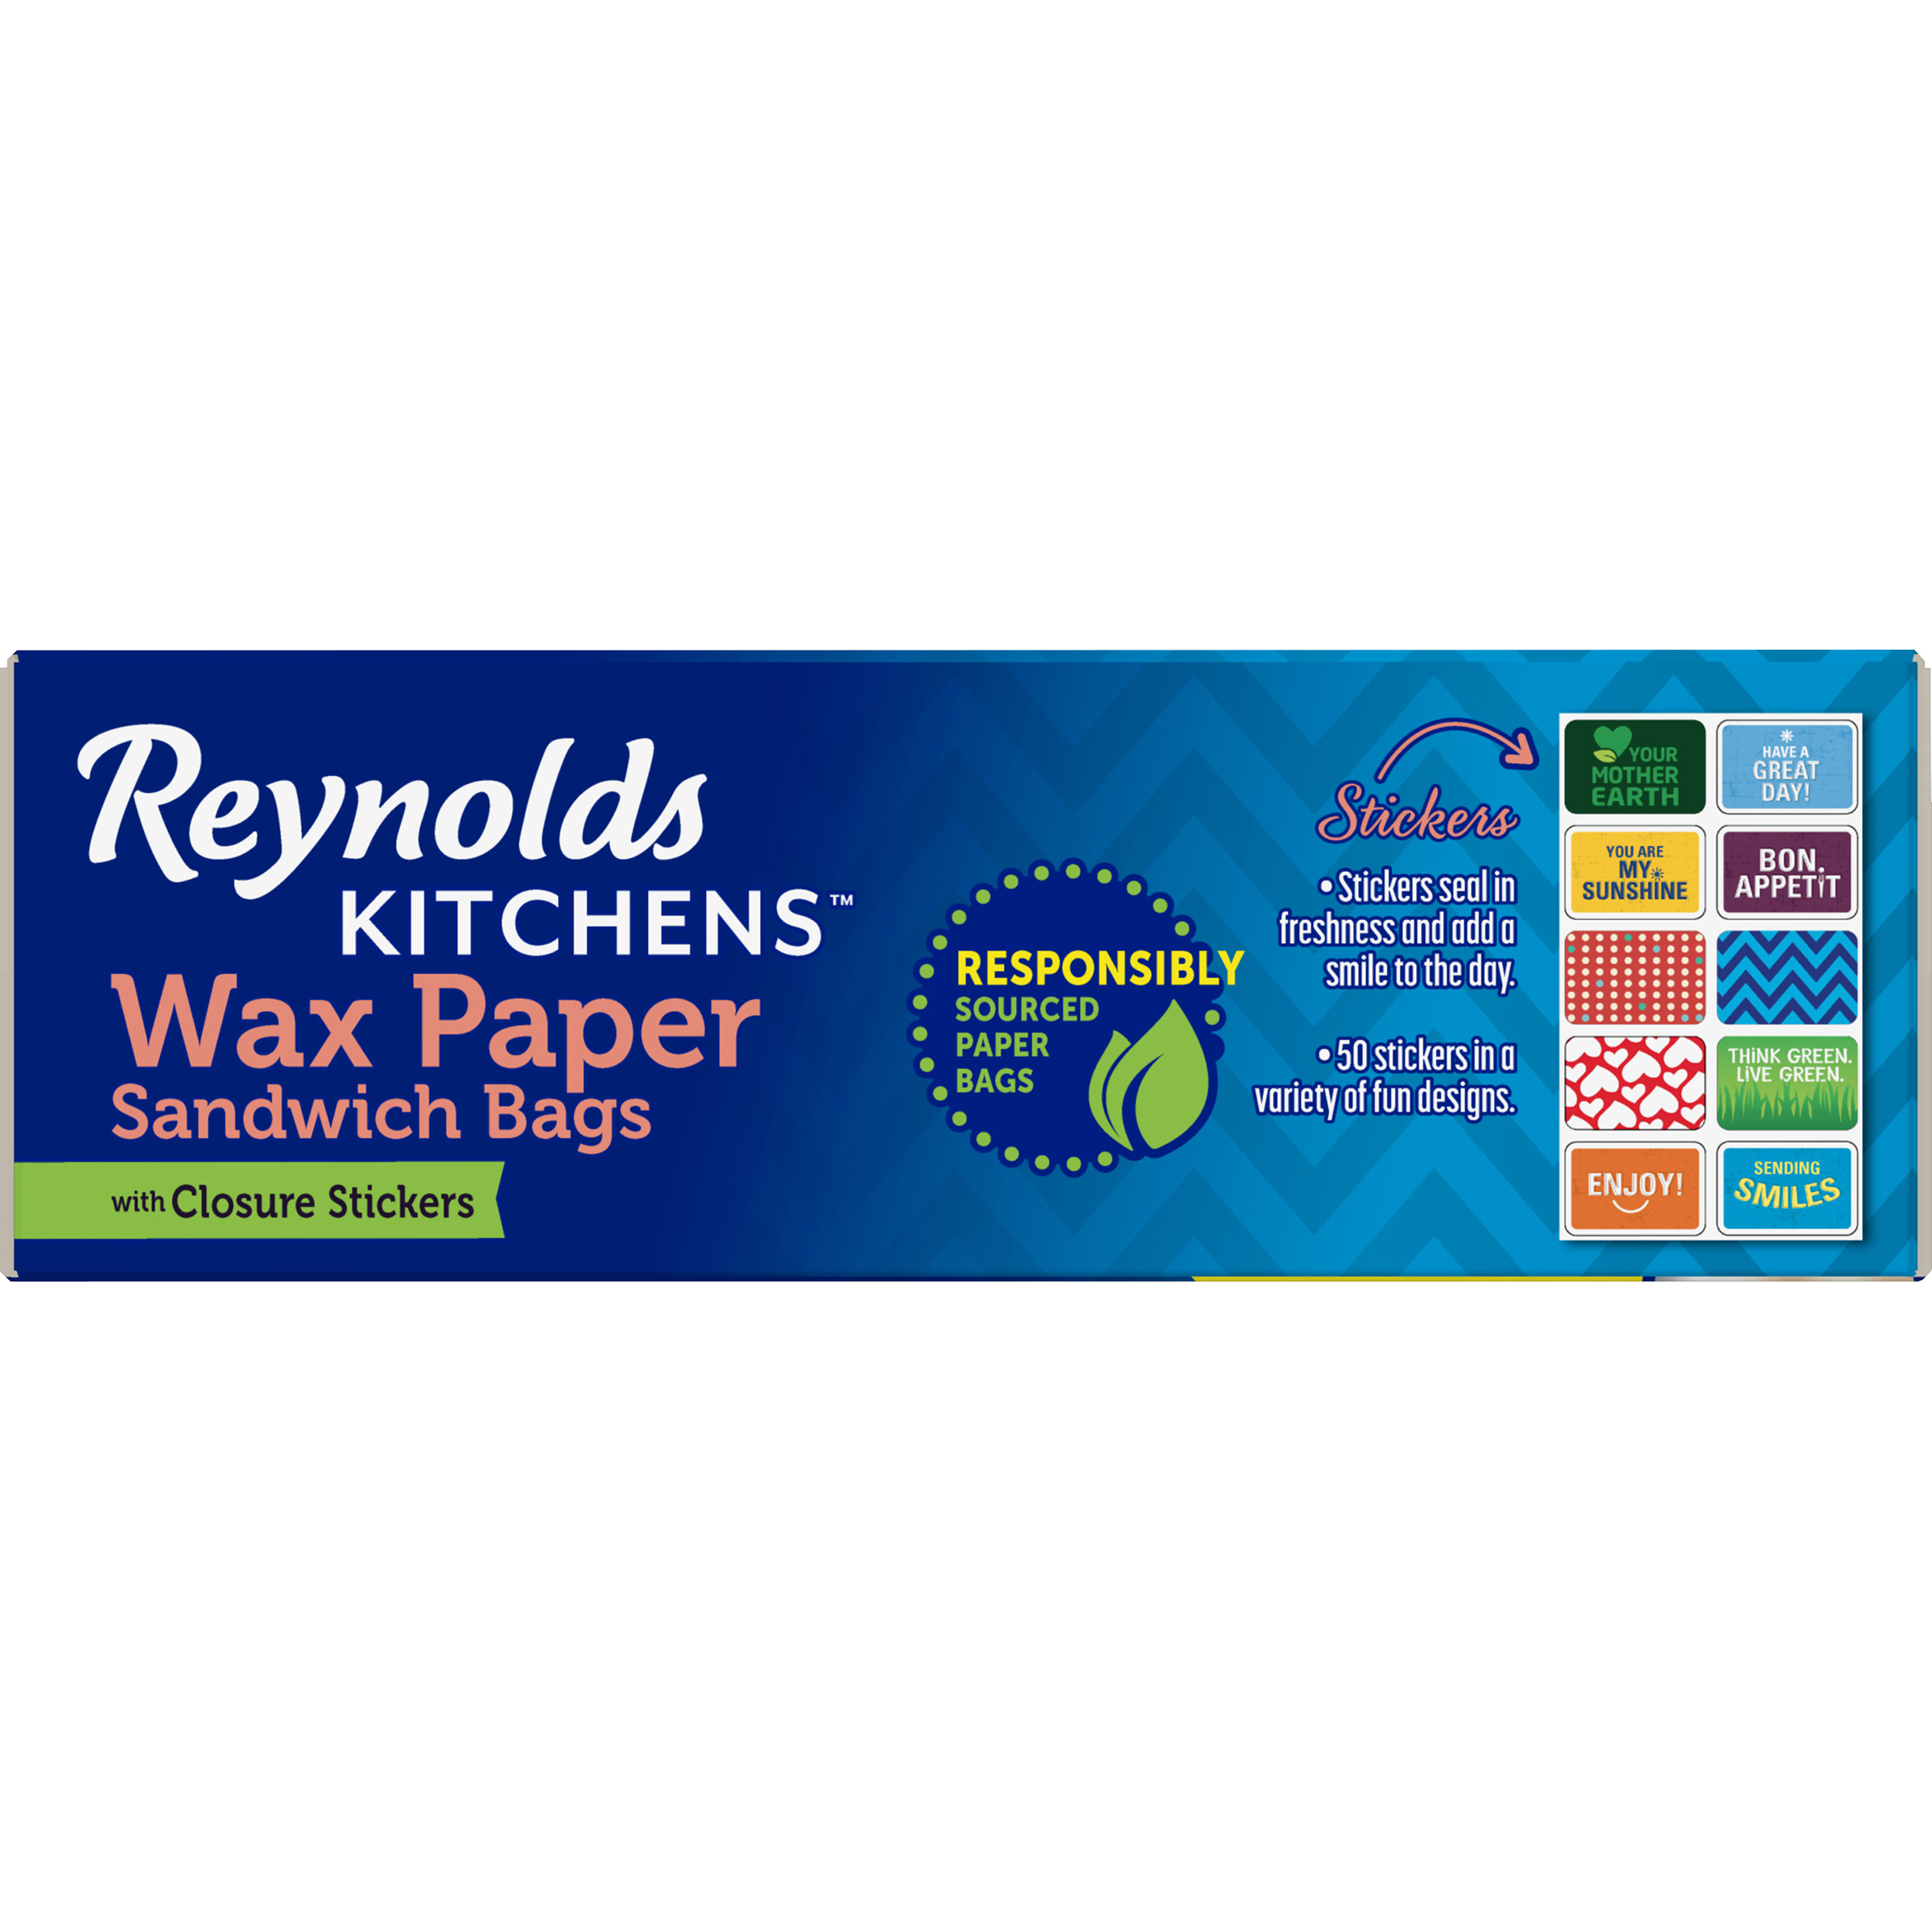 Reynolds Kitchens Wax Paper Sandwich Bags - Walmart.com